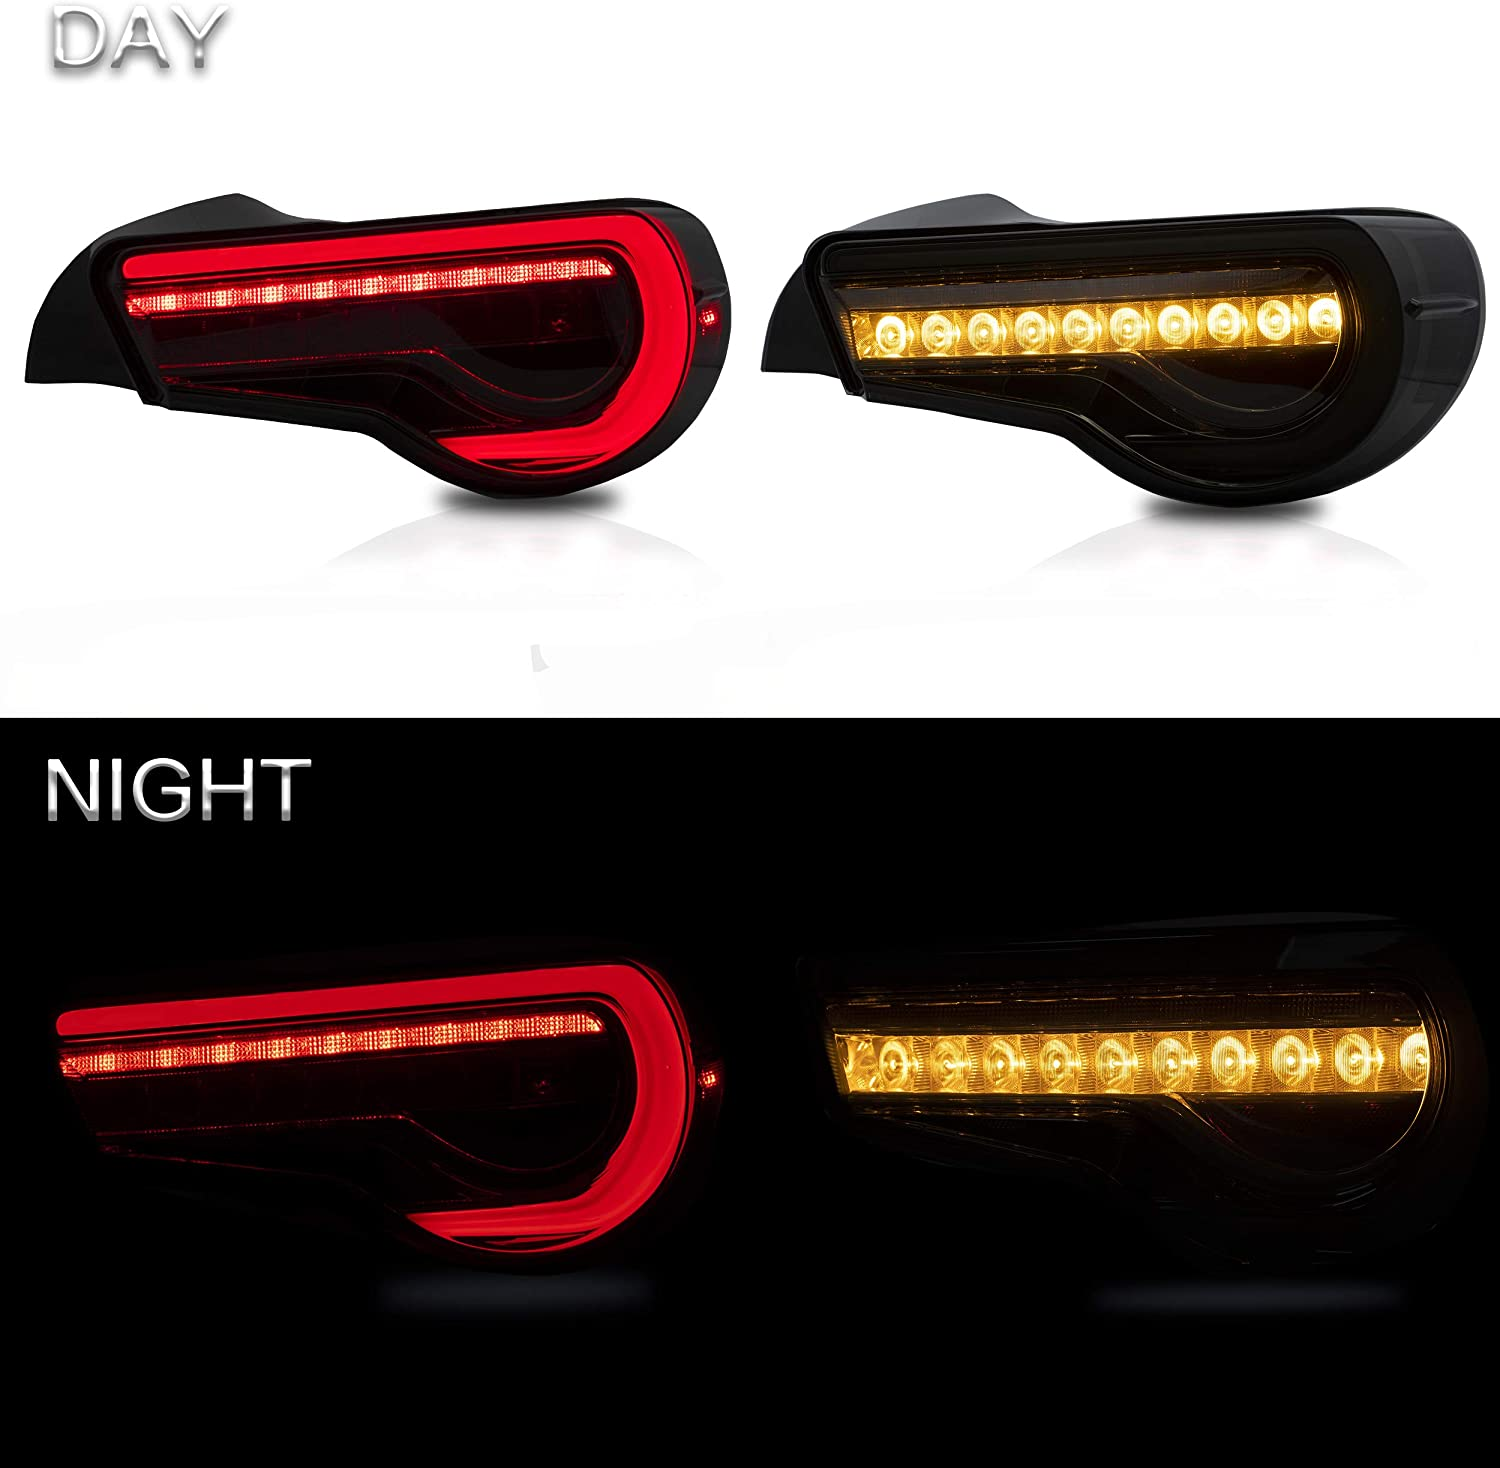 Full LED Plug-and-play,Red VLAND Tail lights Assembly Fit for Toyota 86 2012 2013 2014 2015 2016 2017 2018 2019,Taill Lamp assembly Subaru BRZ//Scion FRS 2012-2019 with Sequential Turn Signal